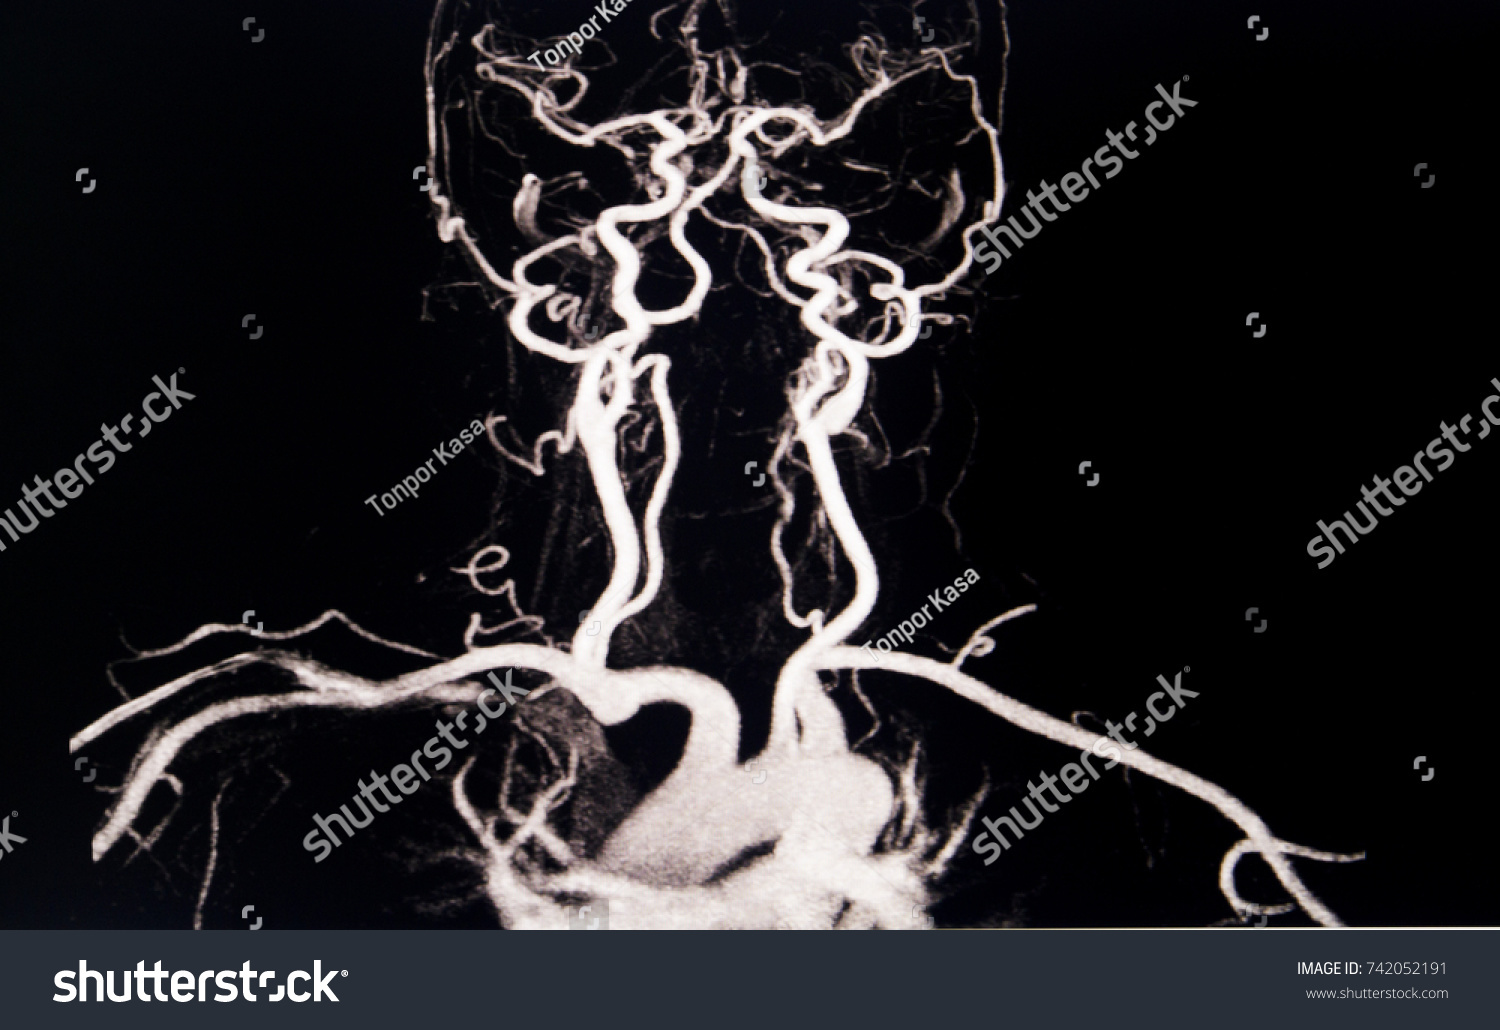 MRA Blood Vessels Brain Cerebrovascular Disease Stock Photo (Edit ...